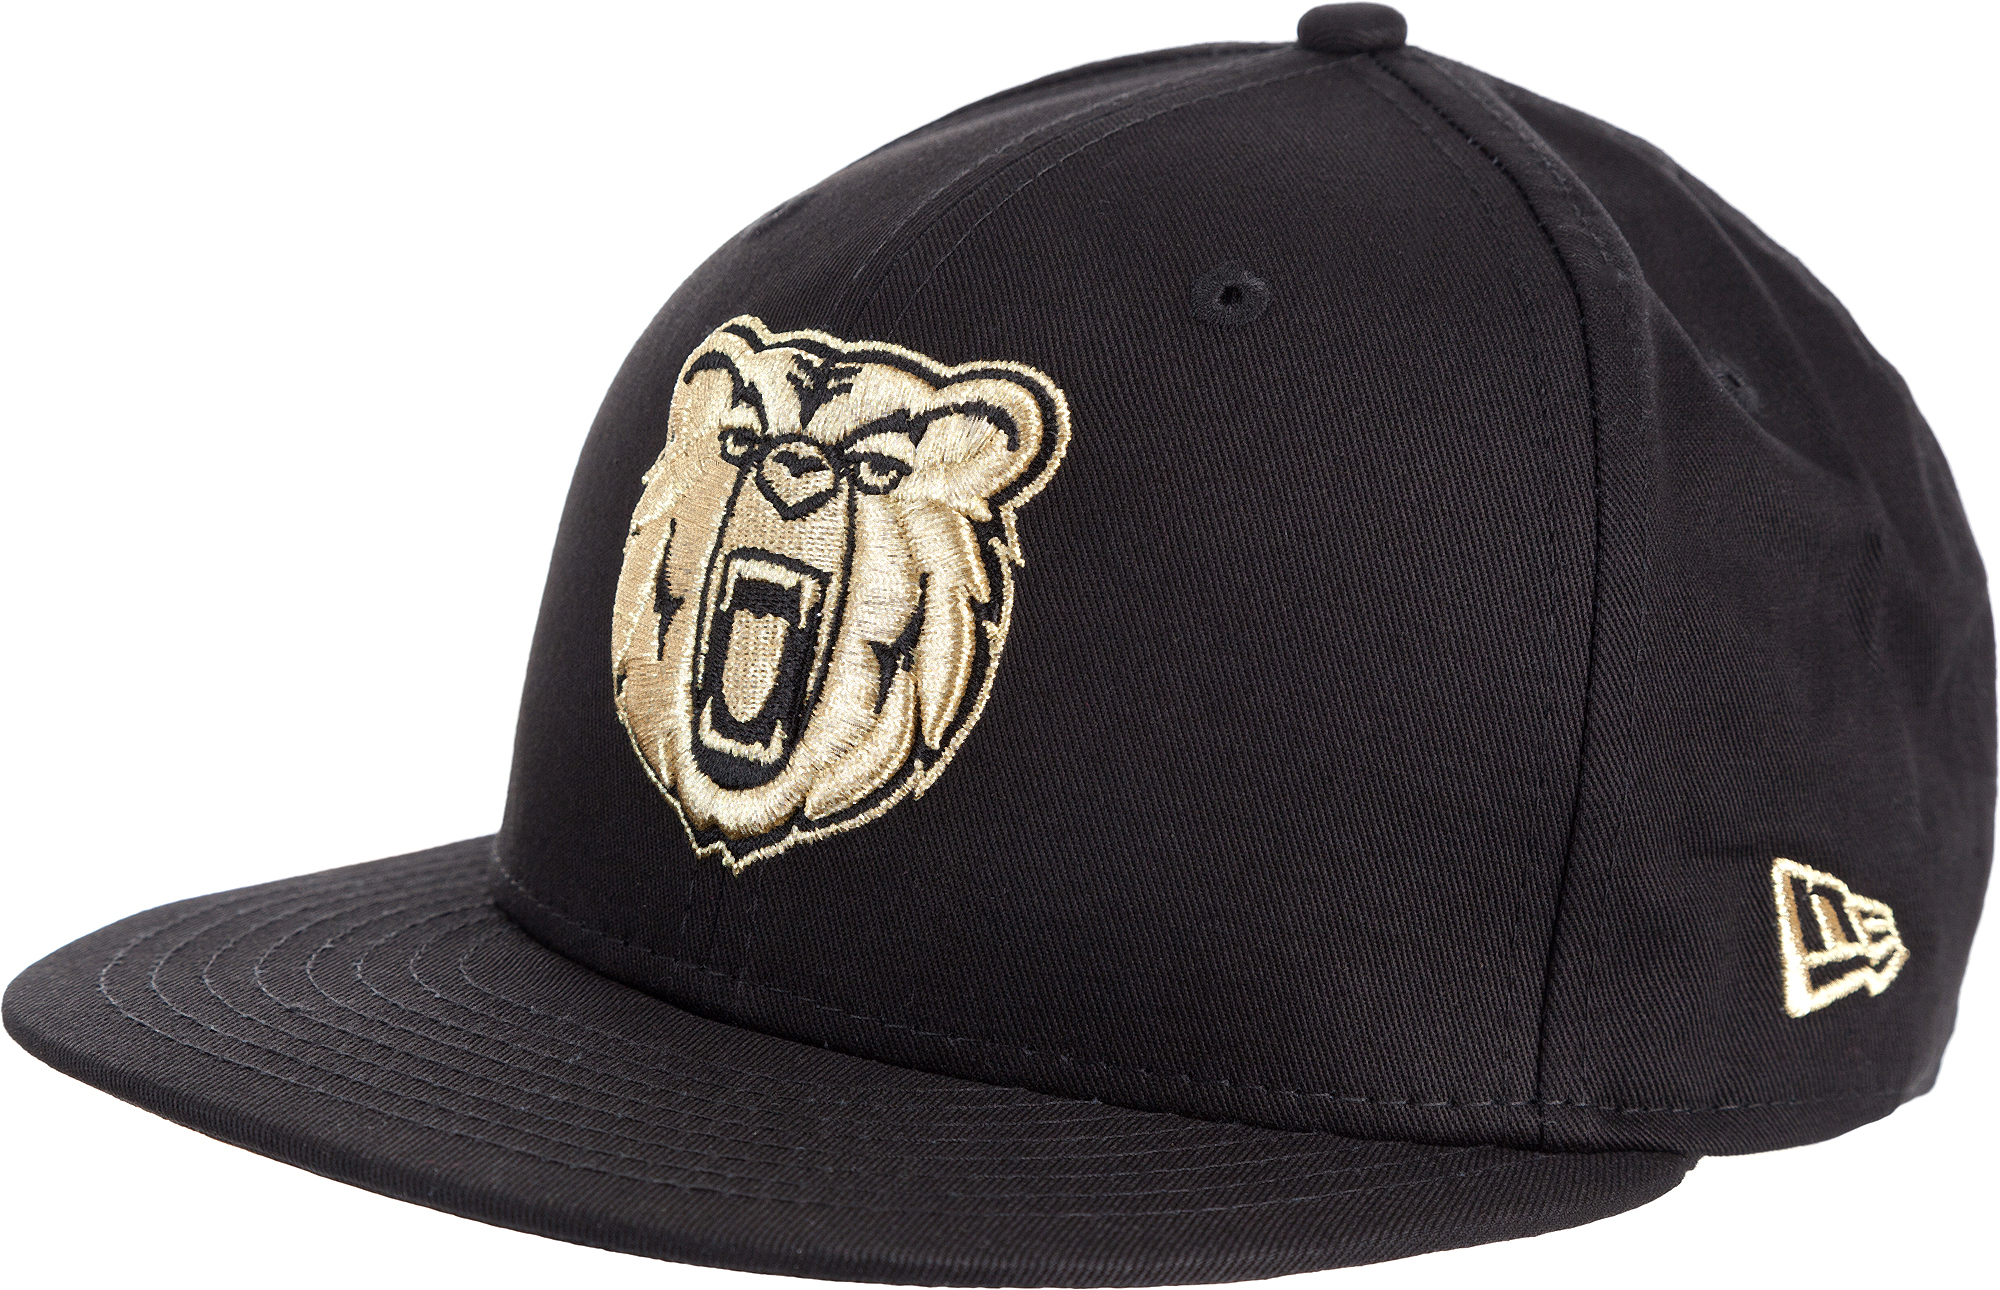 New Era Бейсболка New Era 9Fifty Gold Bear, размер 57-60